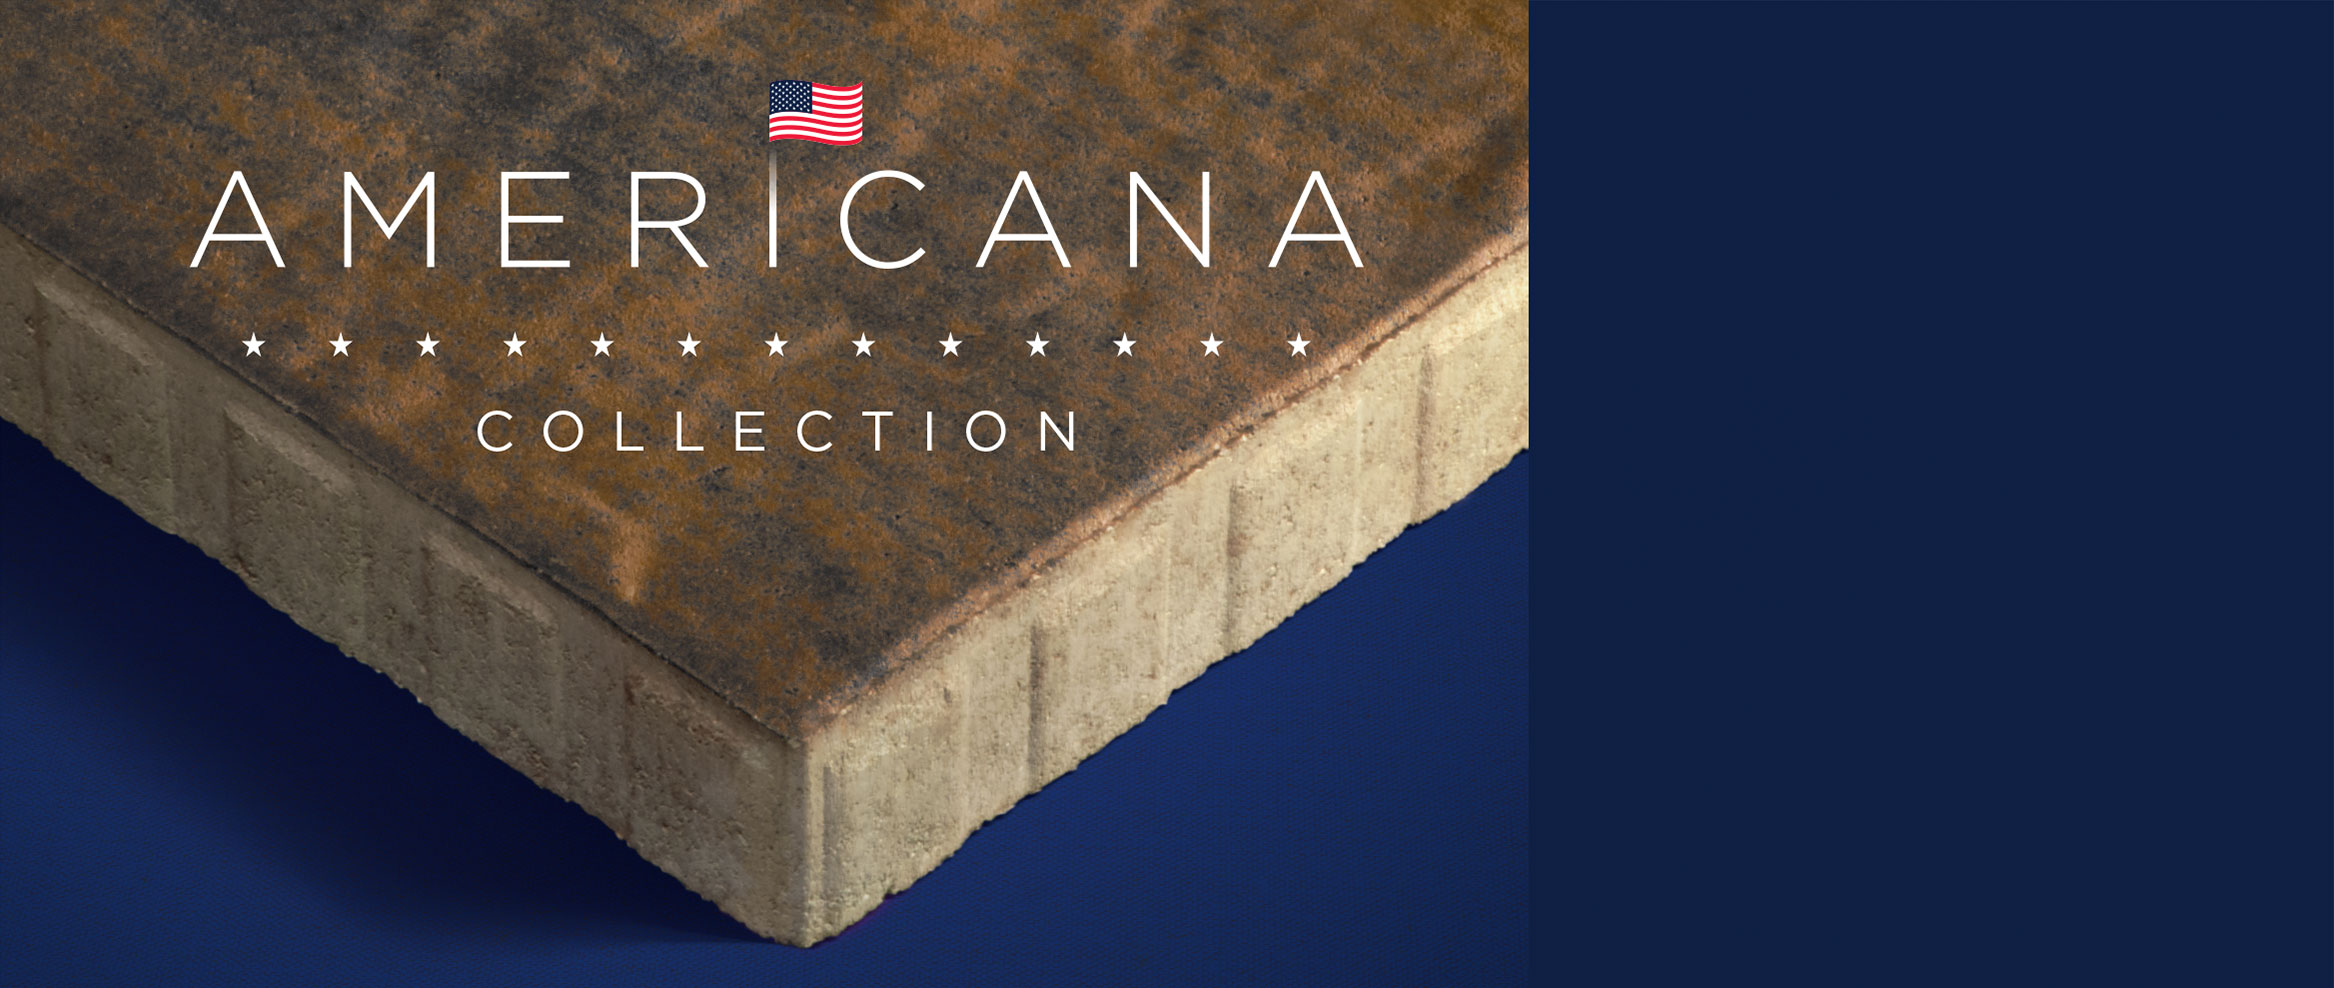 Amerciana Collection